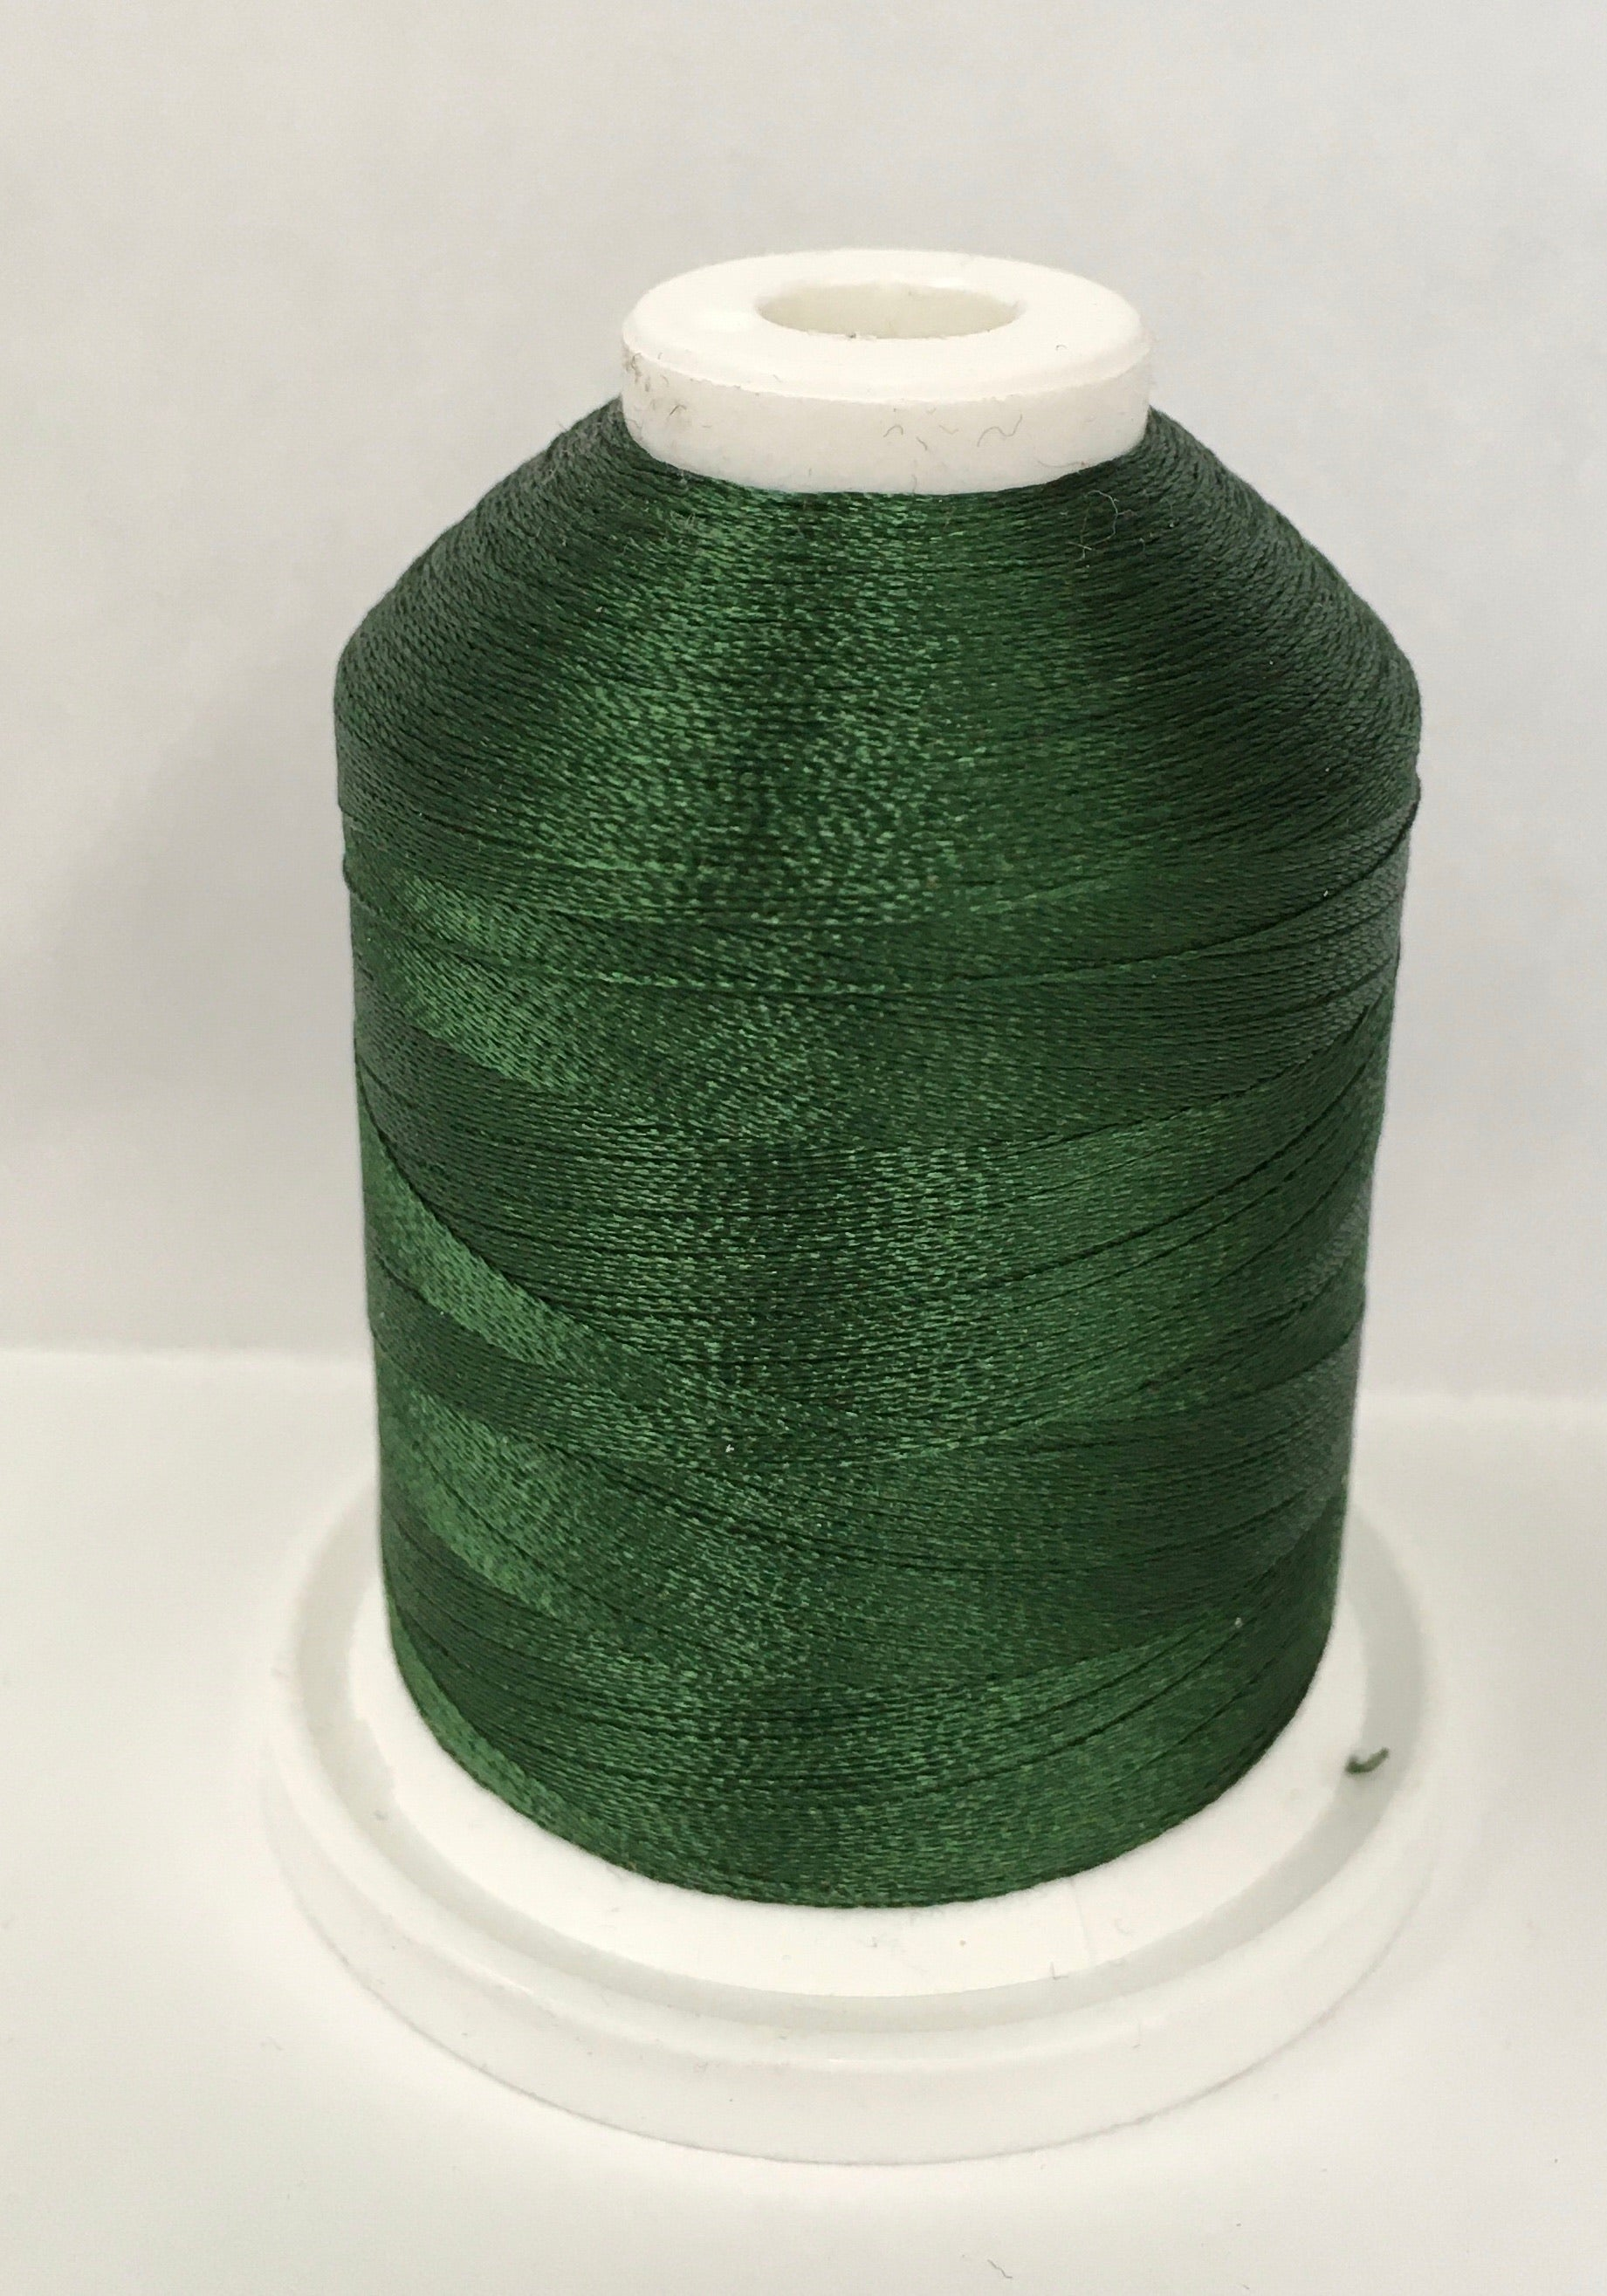 Robison-Anton Rayon Thread - 2323 Holly